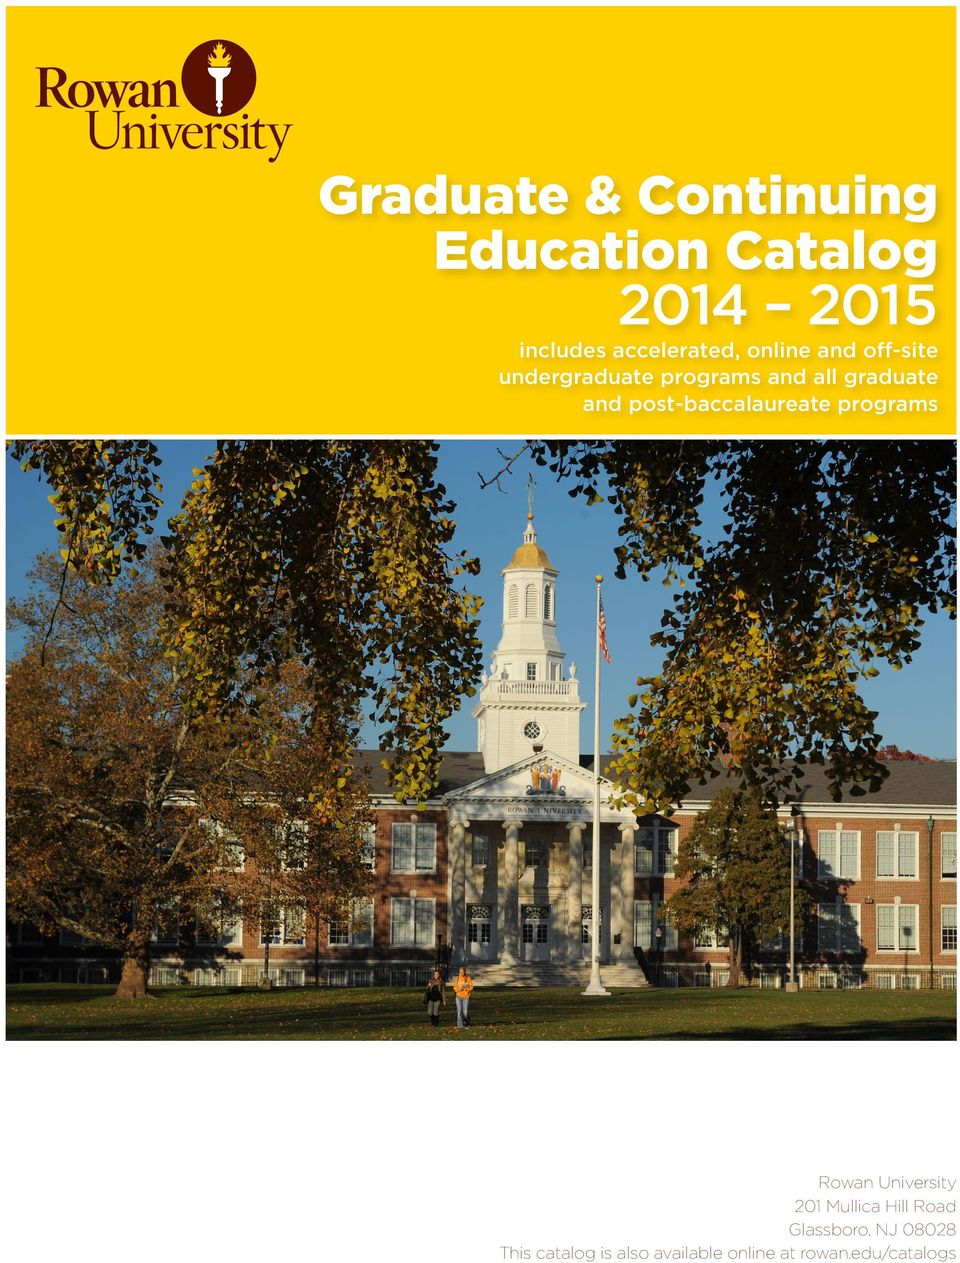 graduate and post-baccalaureate programs Rowan University 201 Mullica